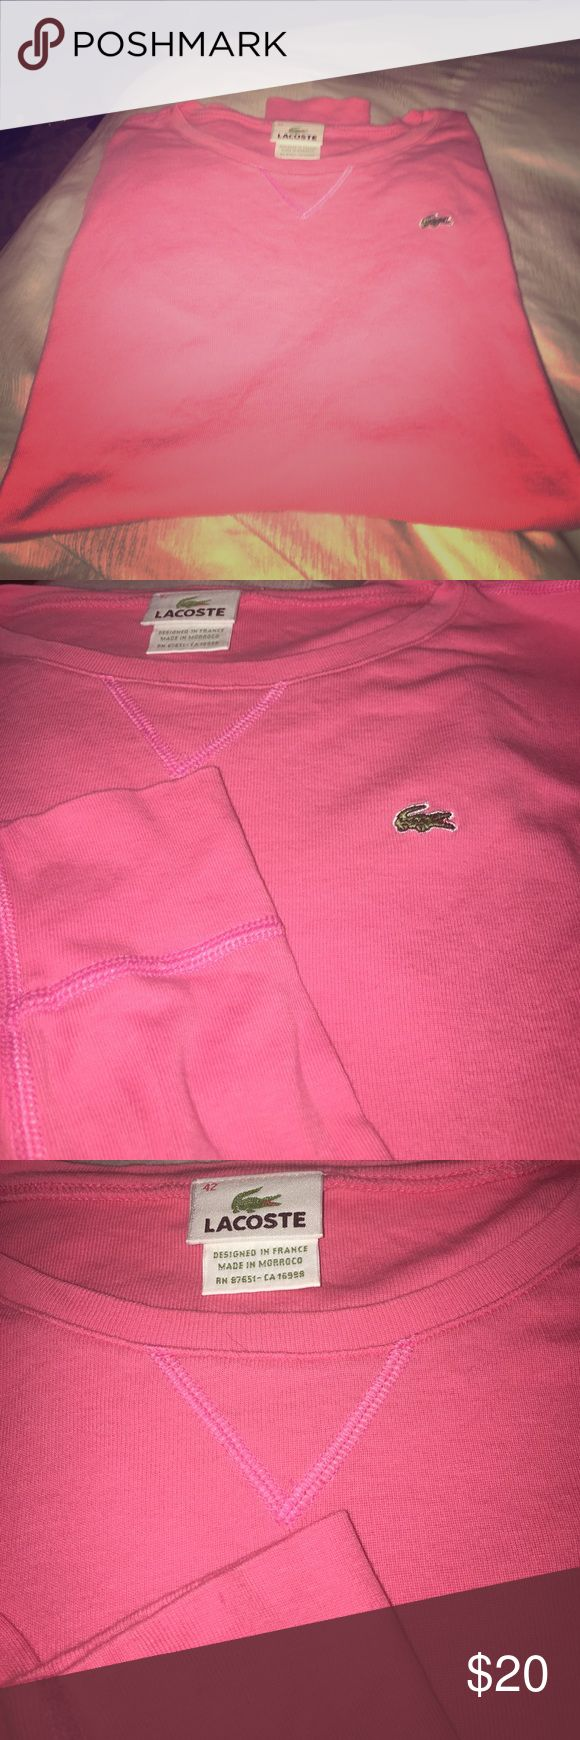 LS crewneck 100% cotton tee Color appears more coral. Signs of wear may run small due to washing. Still in great condition. (Size 42) Lacoste Tops Tees - Long Sleeve